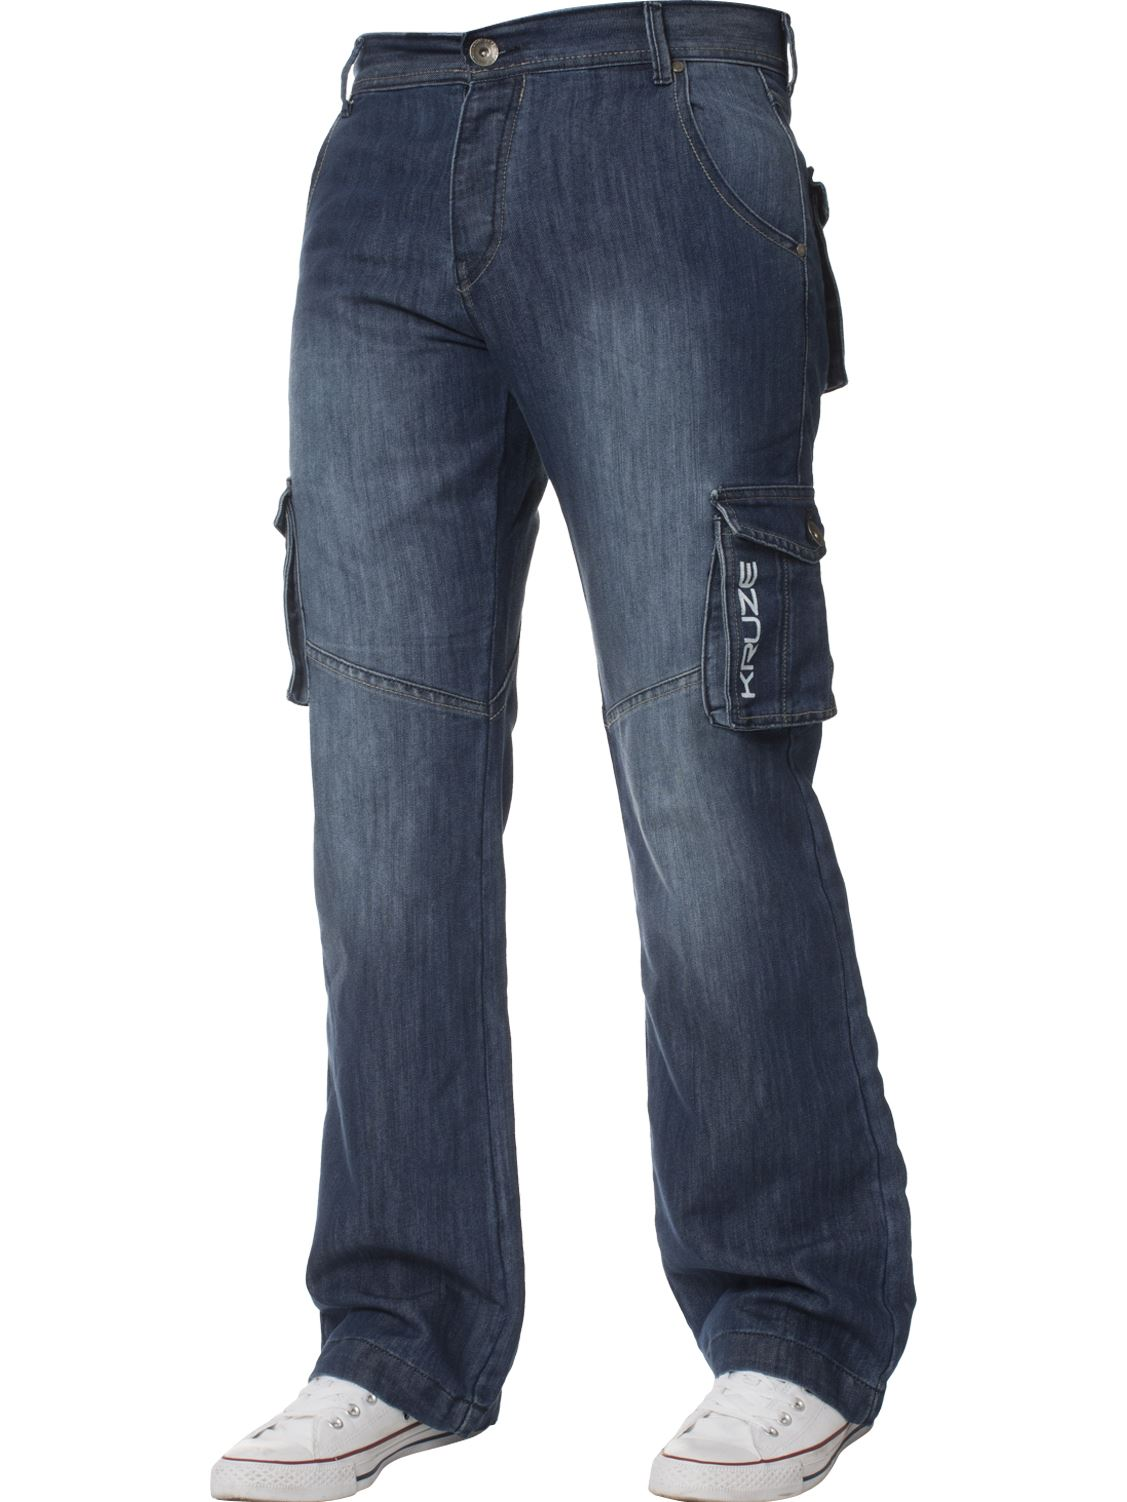 Mens-Cargo-Combat-Trousers-Jeans-Heavy-Duty-Work-Casual-Pants-Big-Tall-All-Sizes thumbnail 36